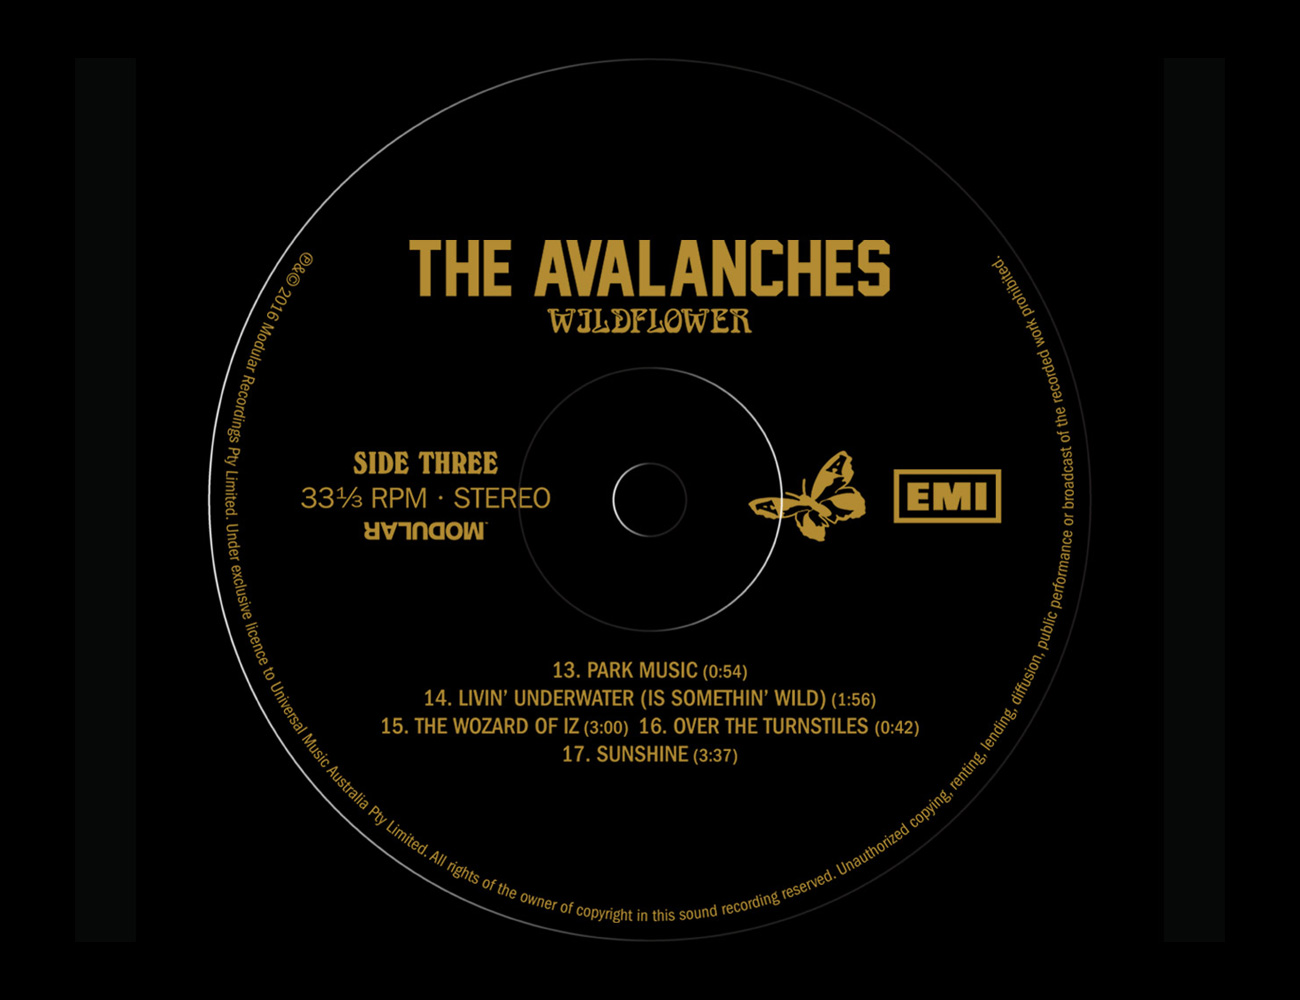 lost-art-the-avalanches-wildflower-music-artwork-chris-hopkins-vinyl-design